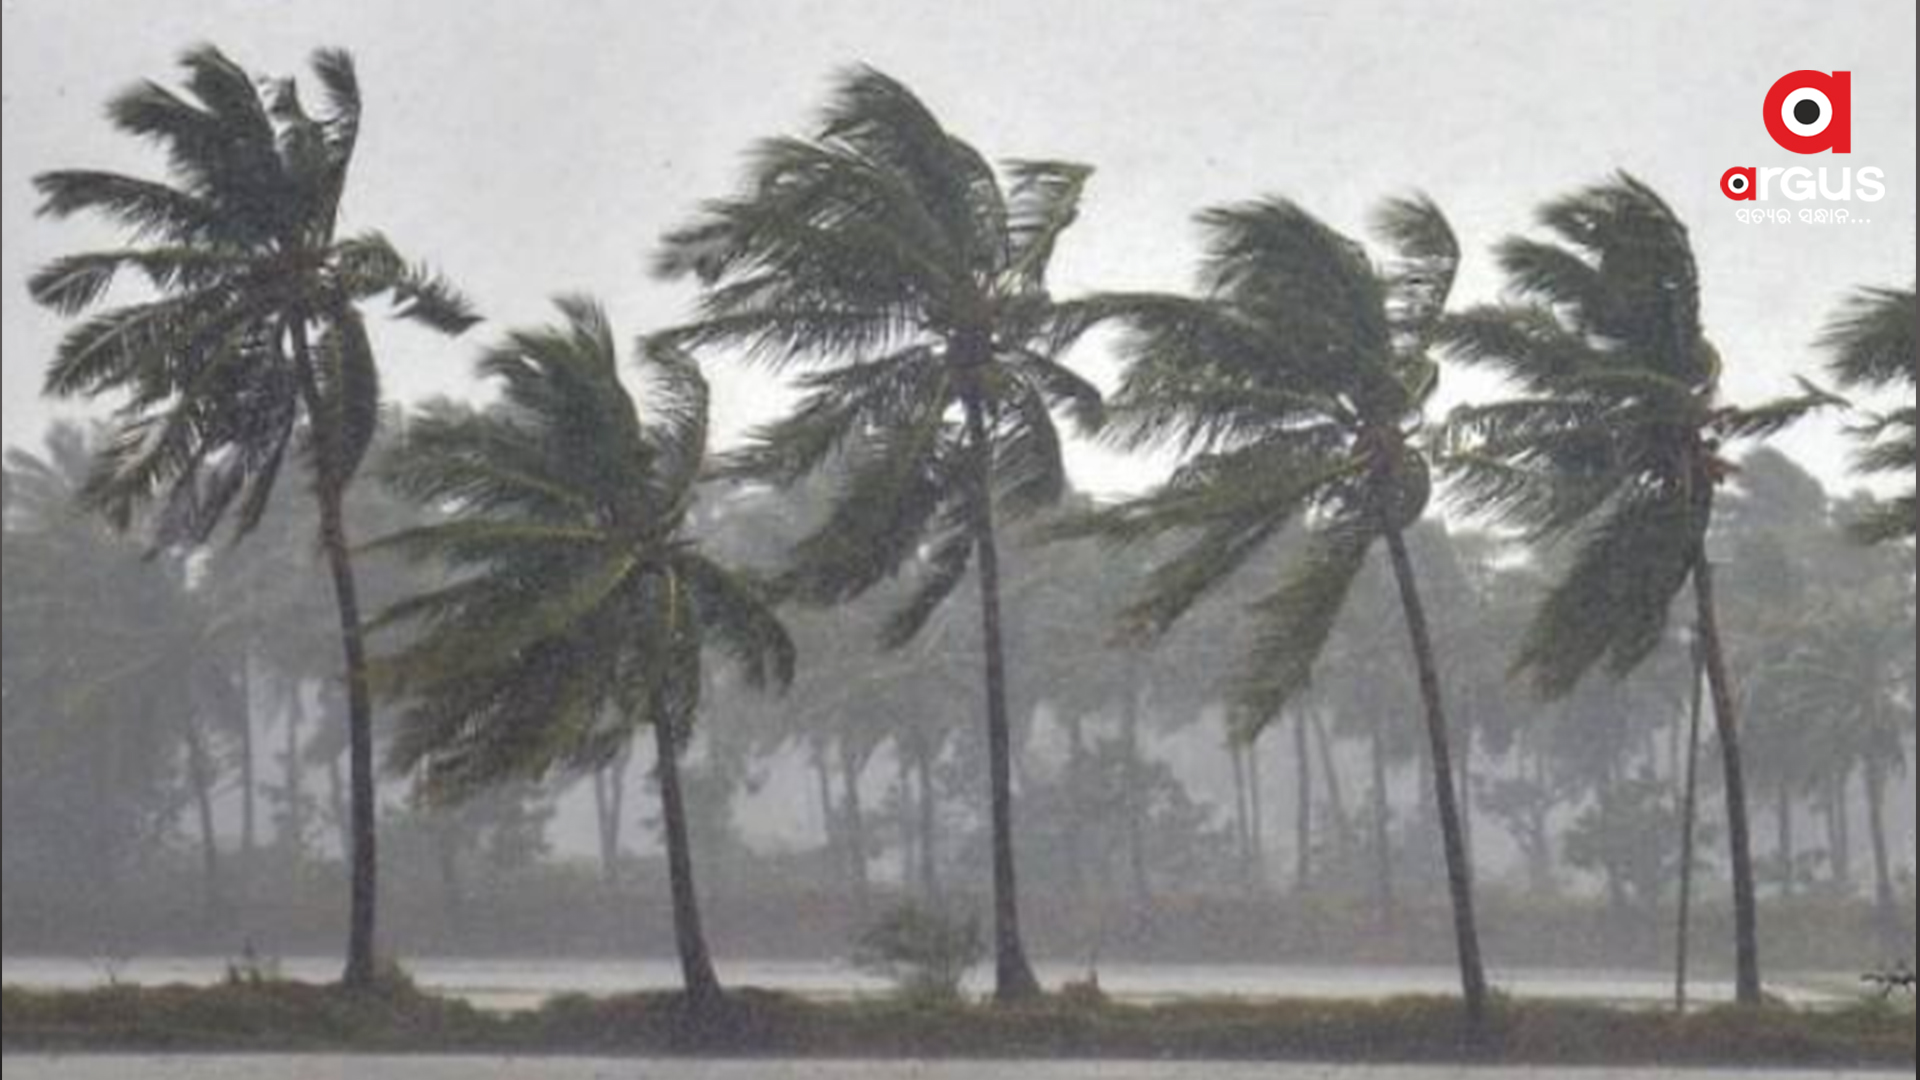 Monsoon likely to advance into entire Odisha in next 48 hours